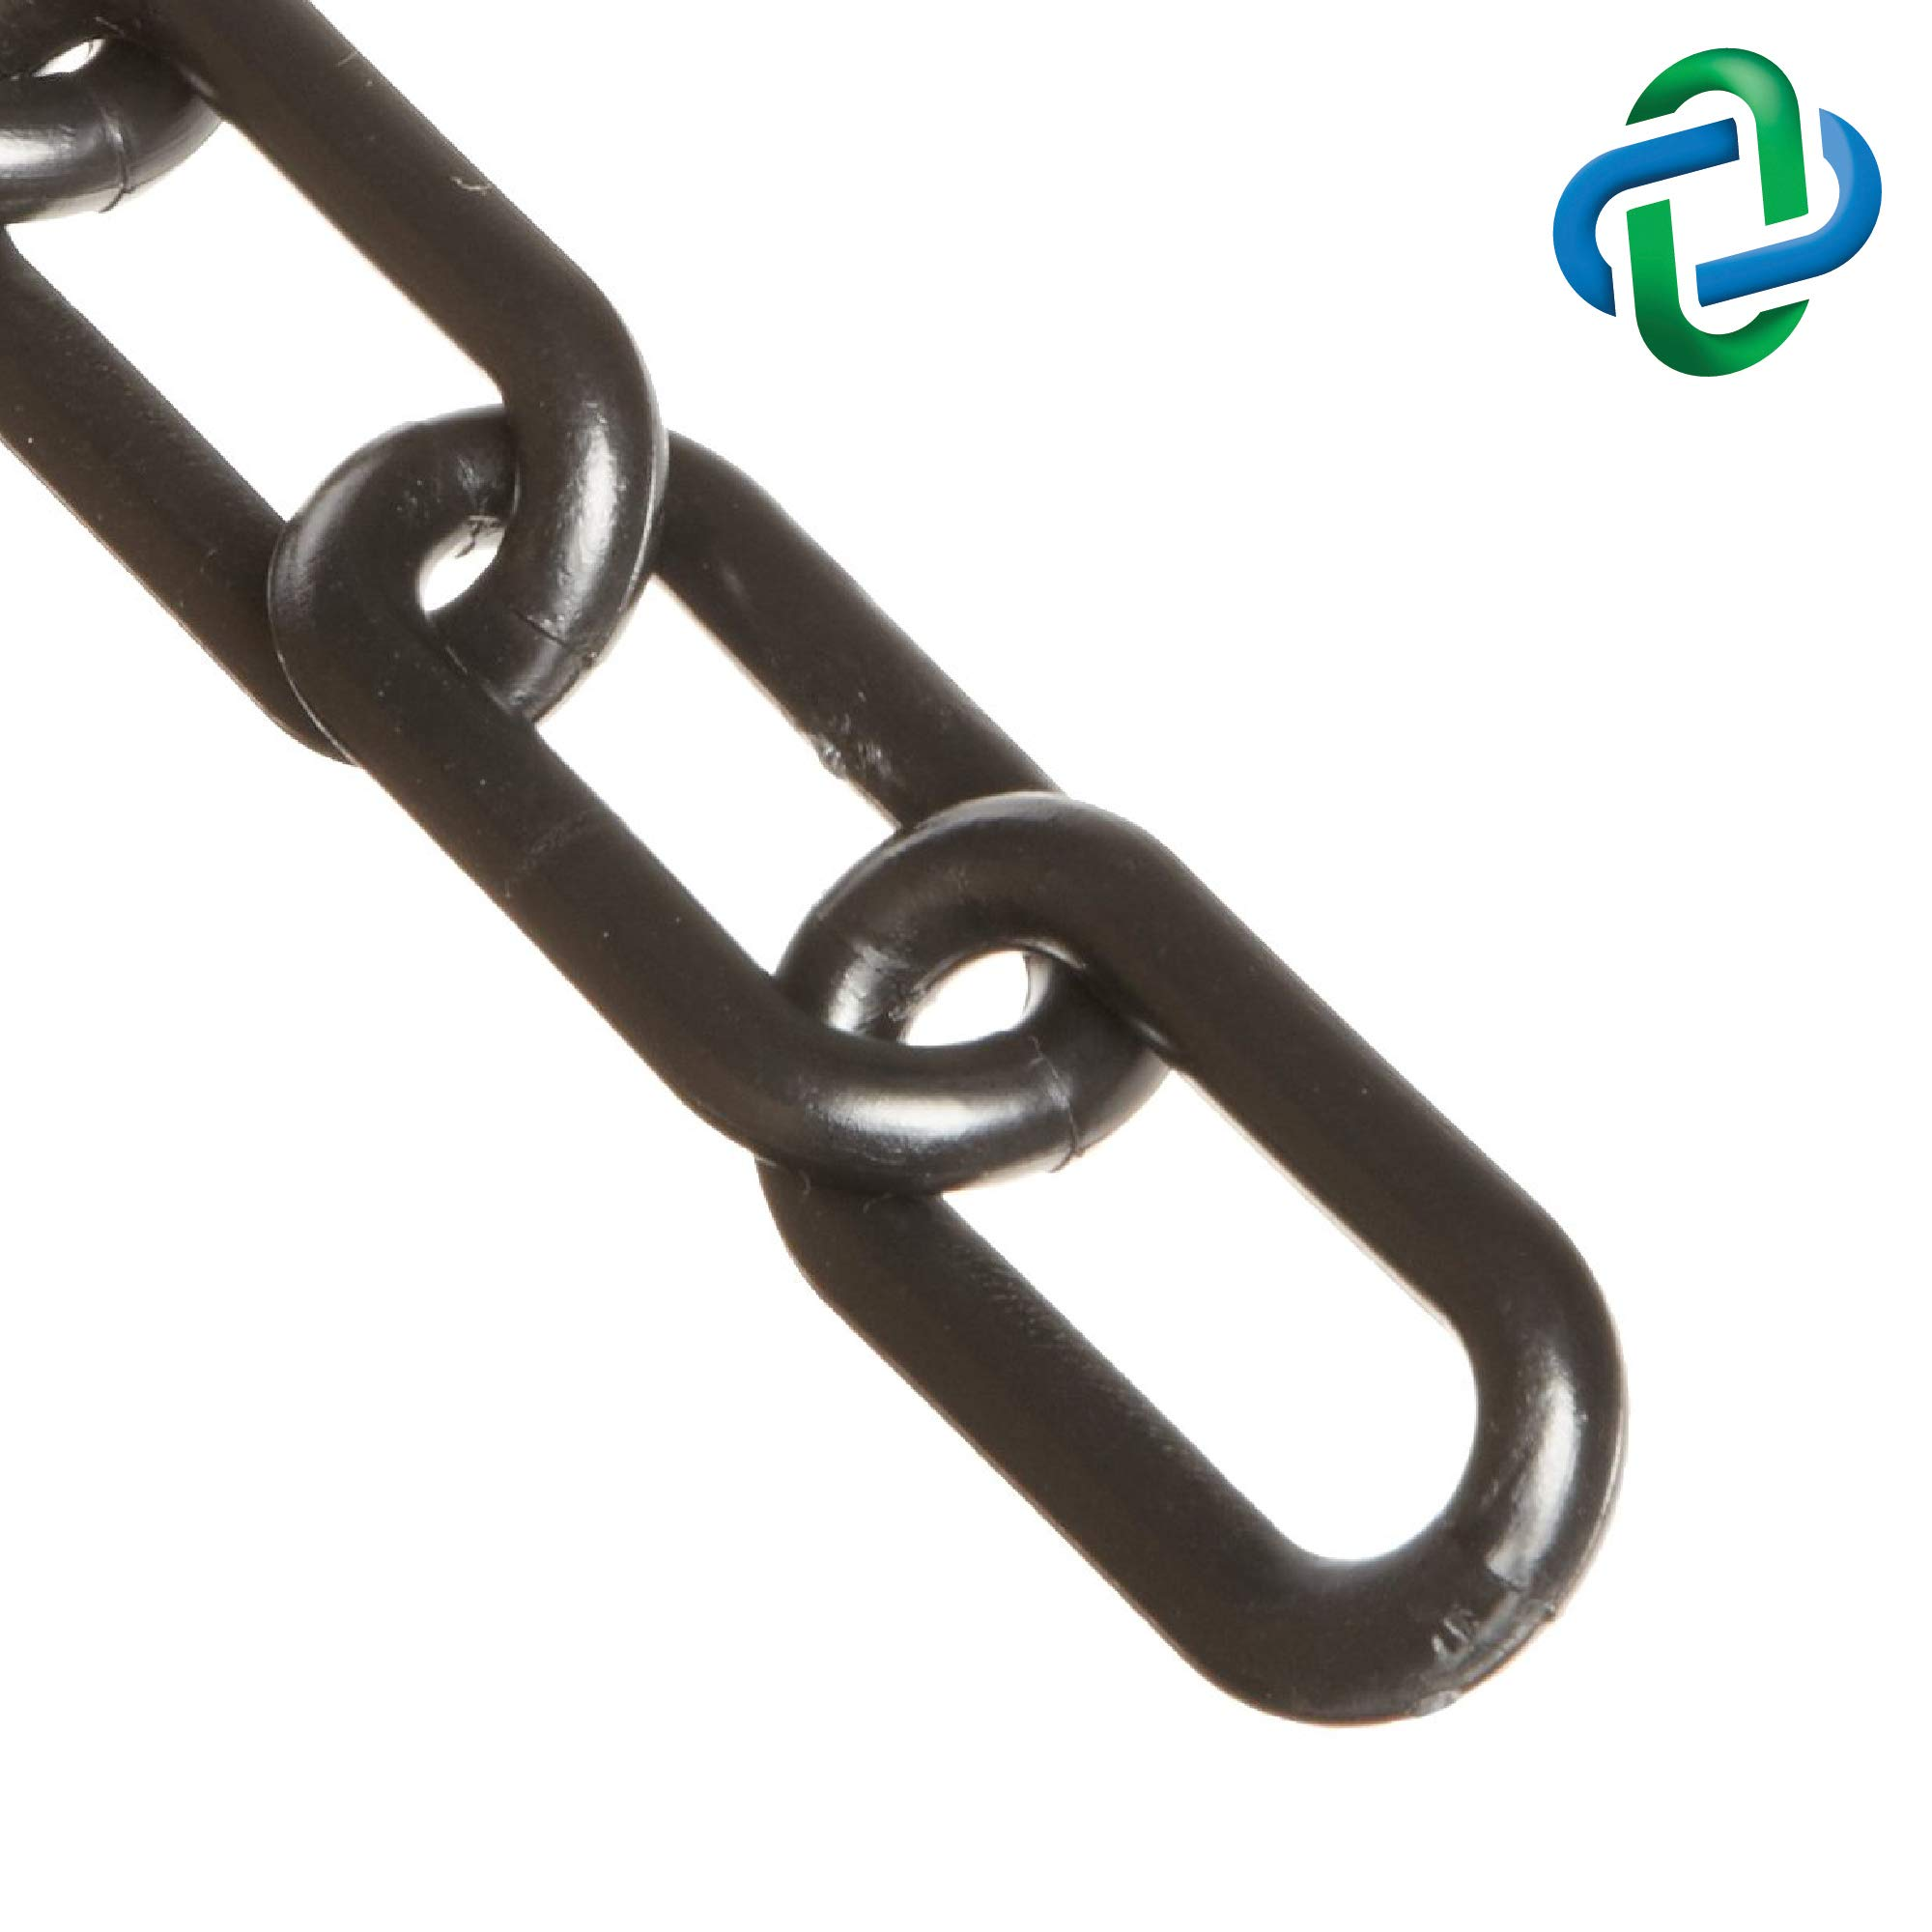 Mr. Chain Plastic Barrier Chain, Black, 2-Inch Link Diameter, 25-Foot Length (50003-25) by Mr. Chain